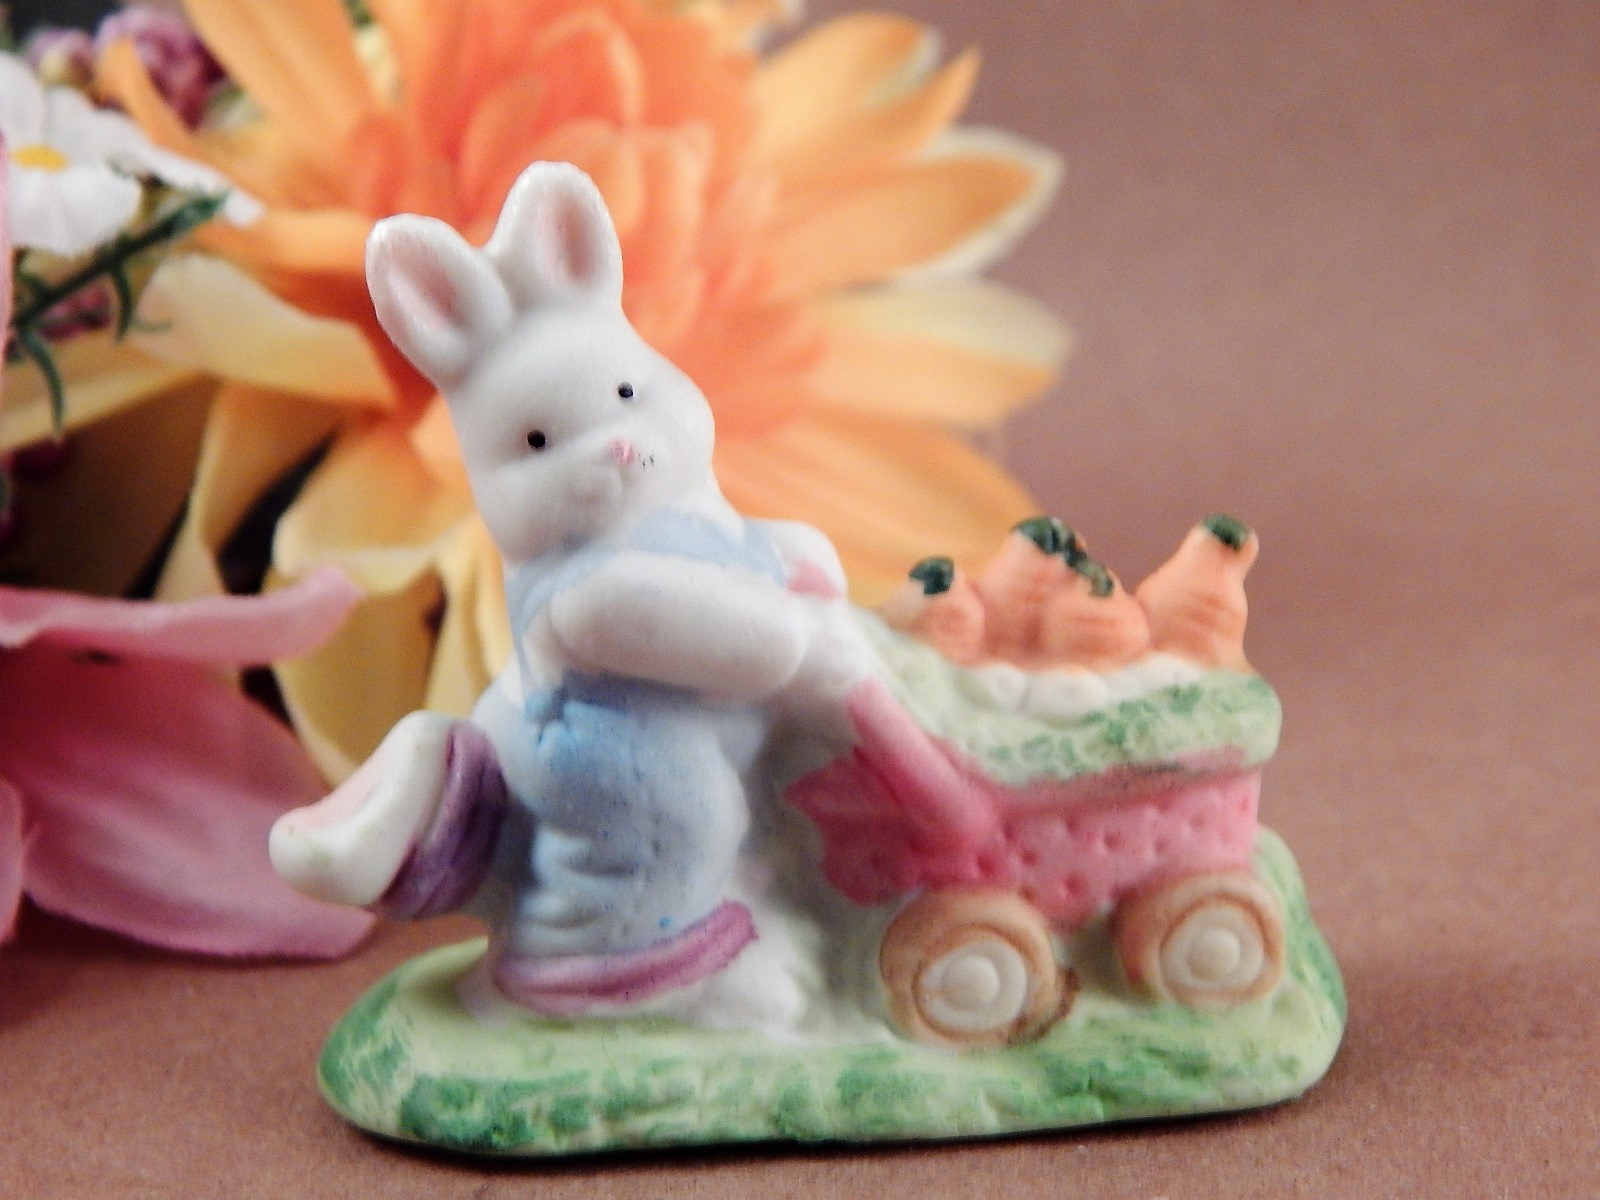 White Bunny Rabbit Carrot Cart Miniature Figurine Hand Painted Porcelain Spring Easter Decor Farmhouse Vintage Collectible